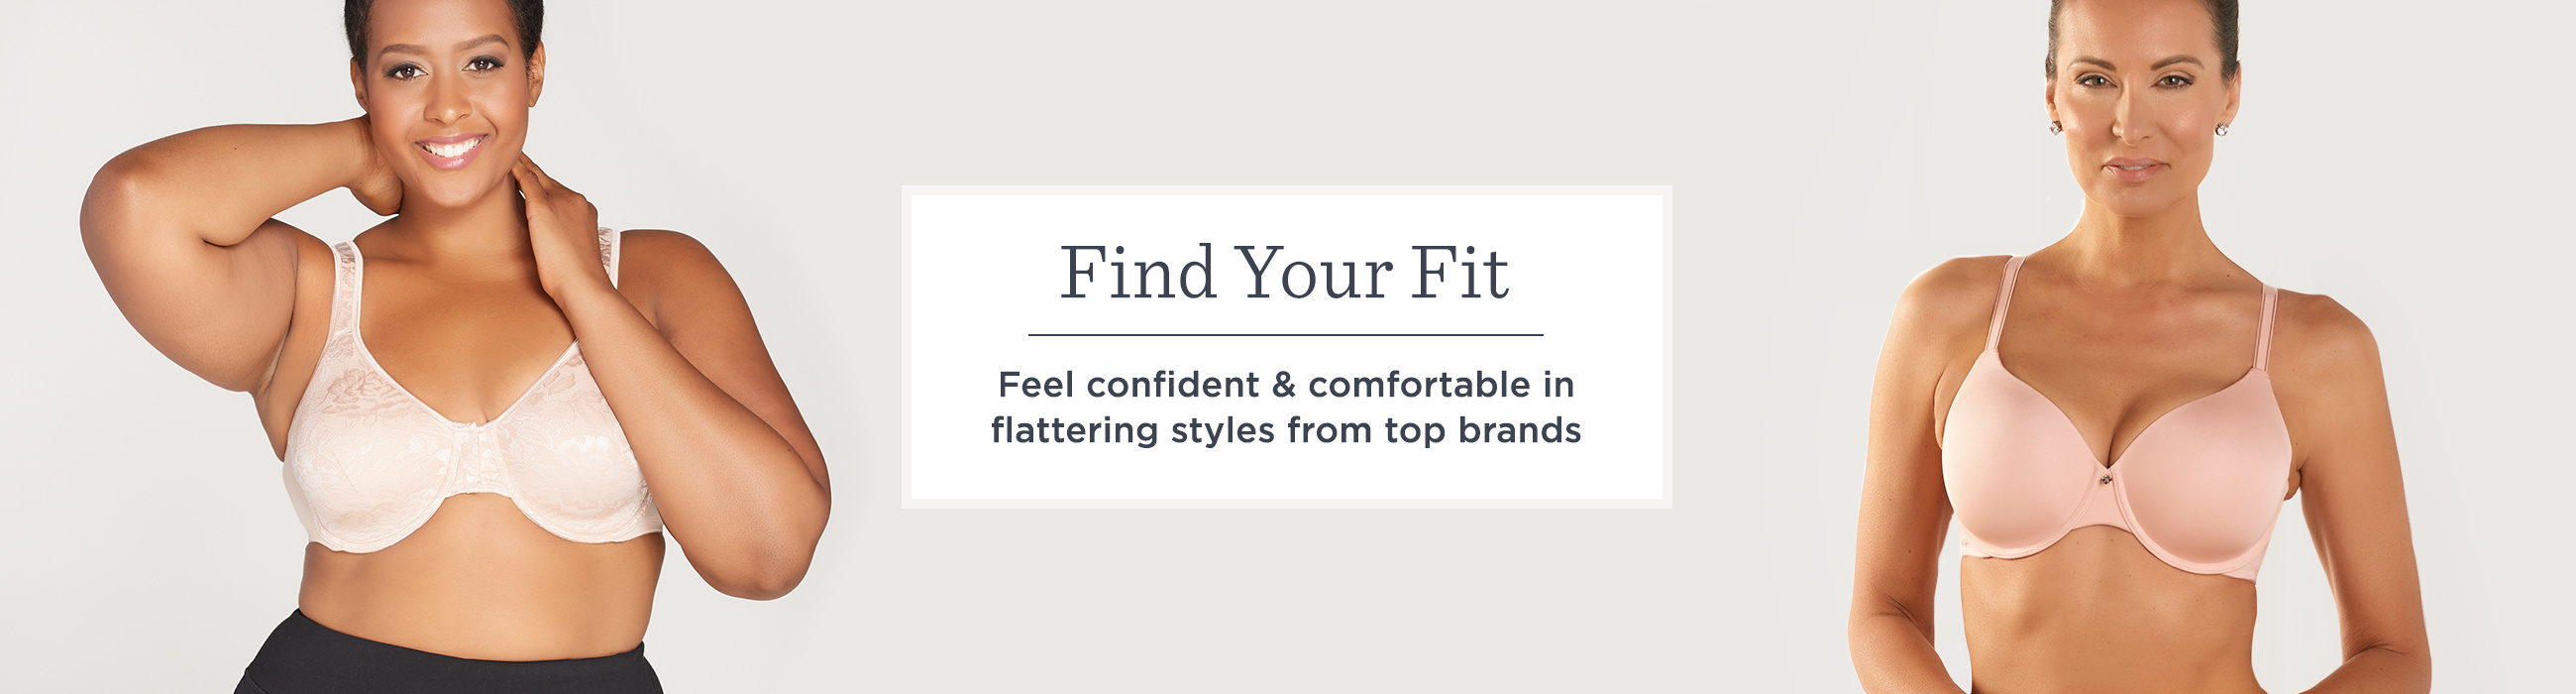 Find Your Fit  Feel confident & comfortable in flattering styles from top brands